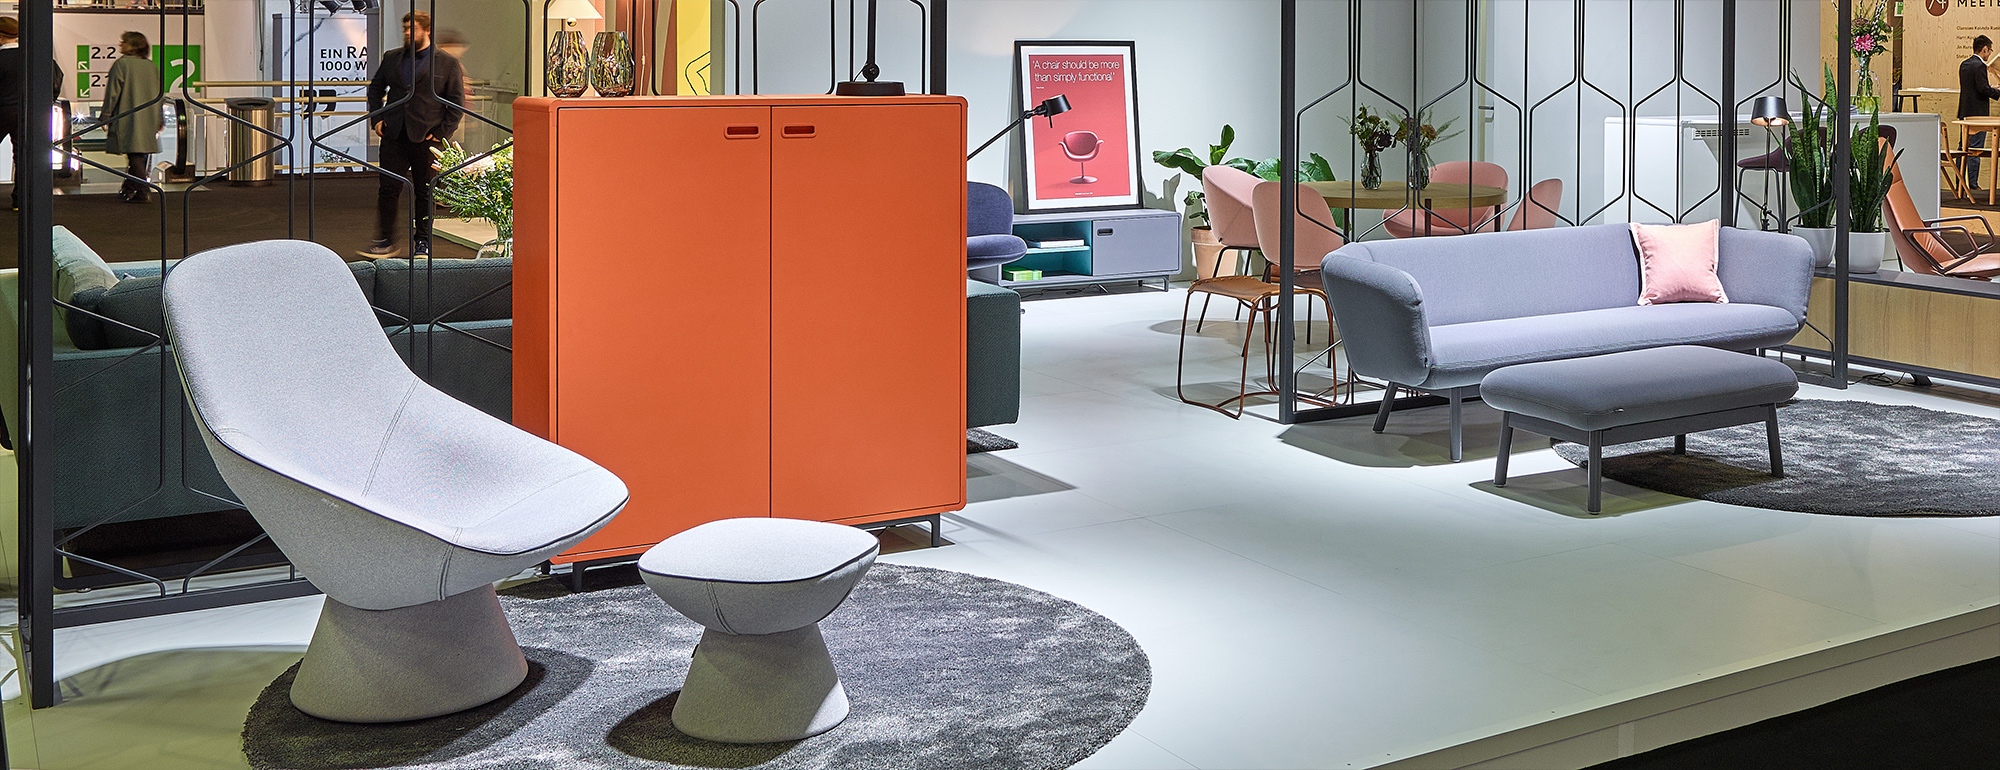 Artifort stand at IMM Cologne 2018